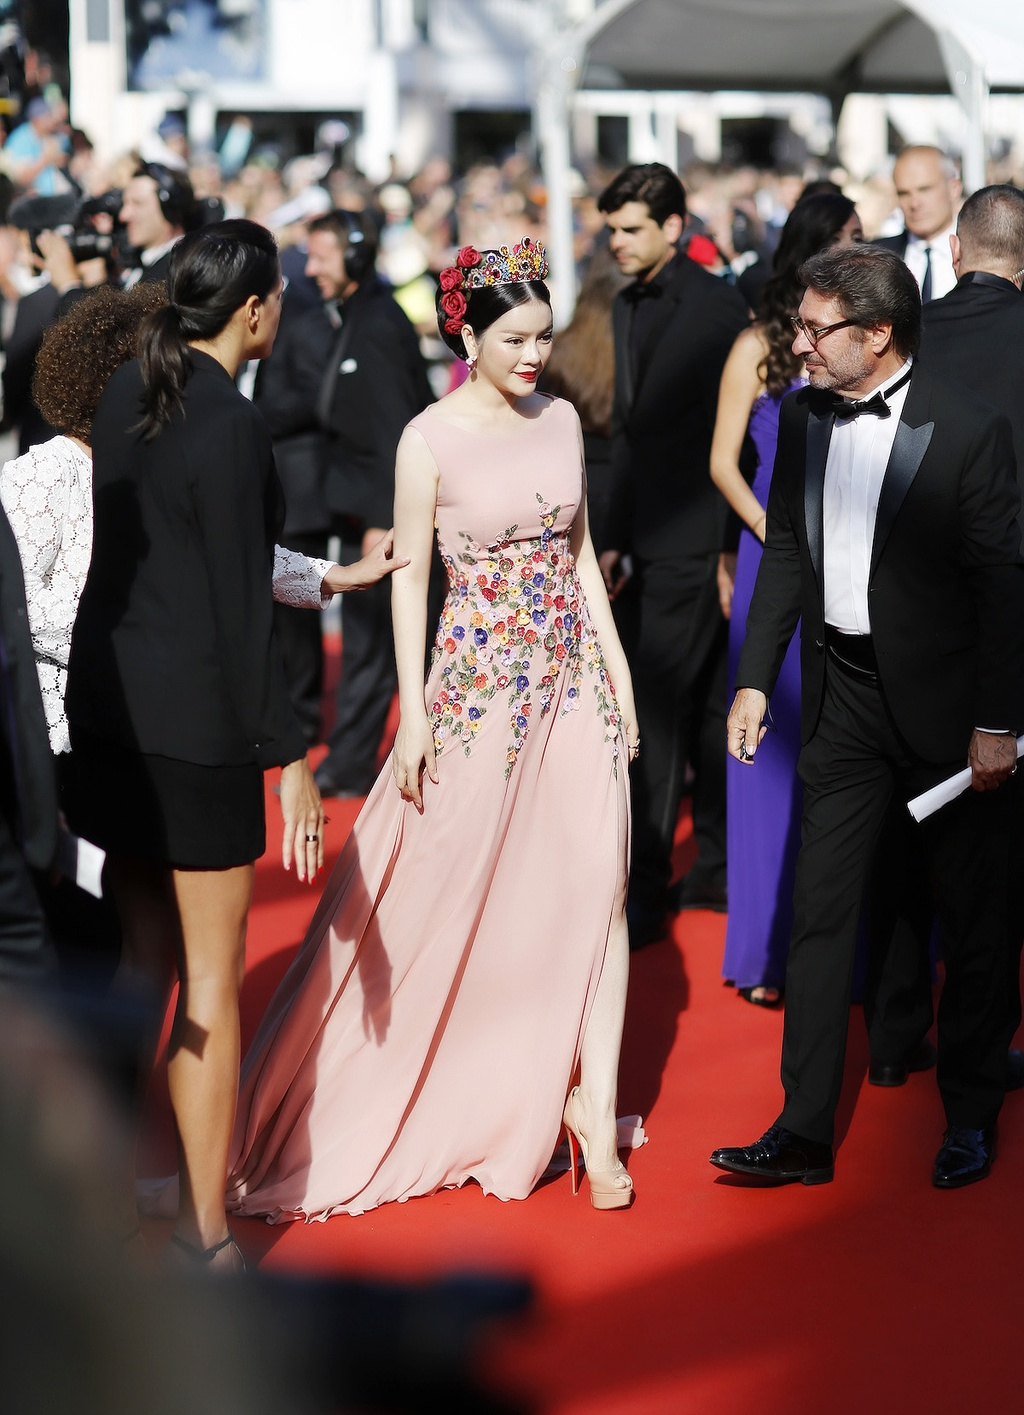 Ly Nha Ky hoa nu than tren tham do Cannes hinh anh 6